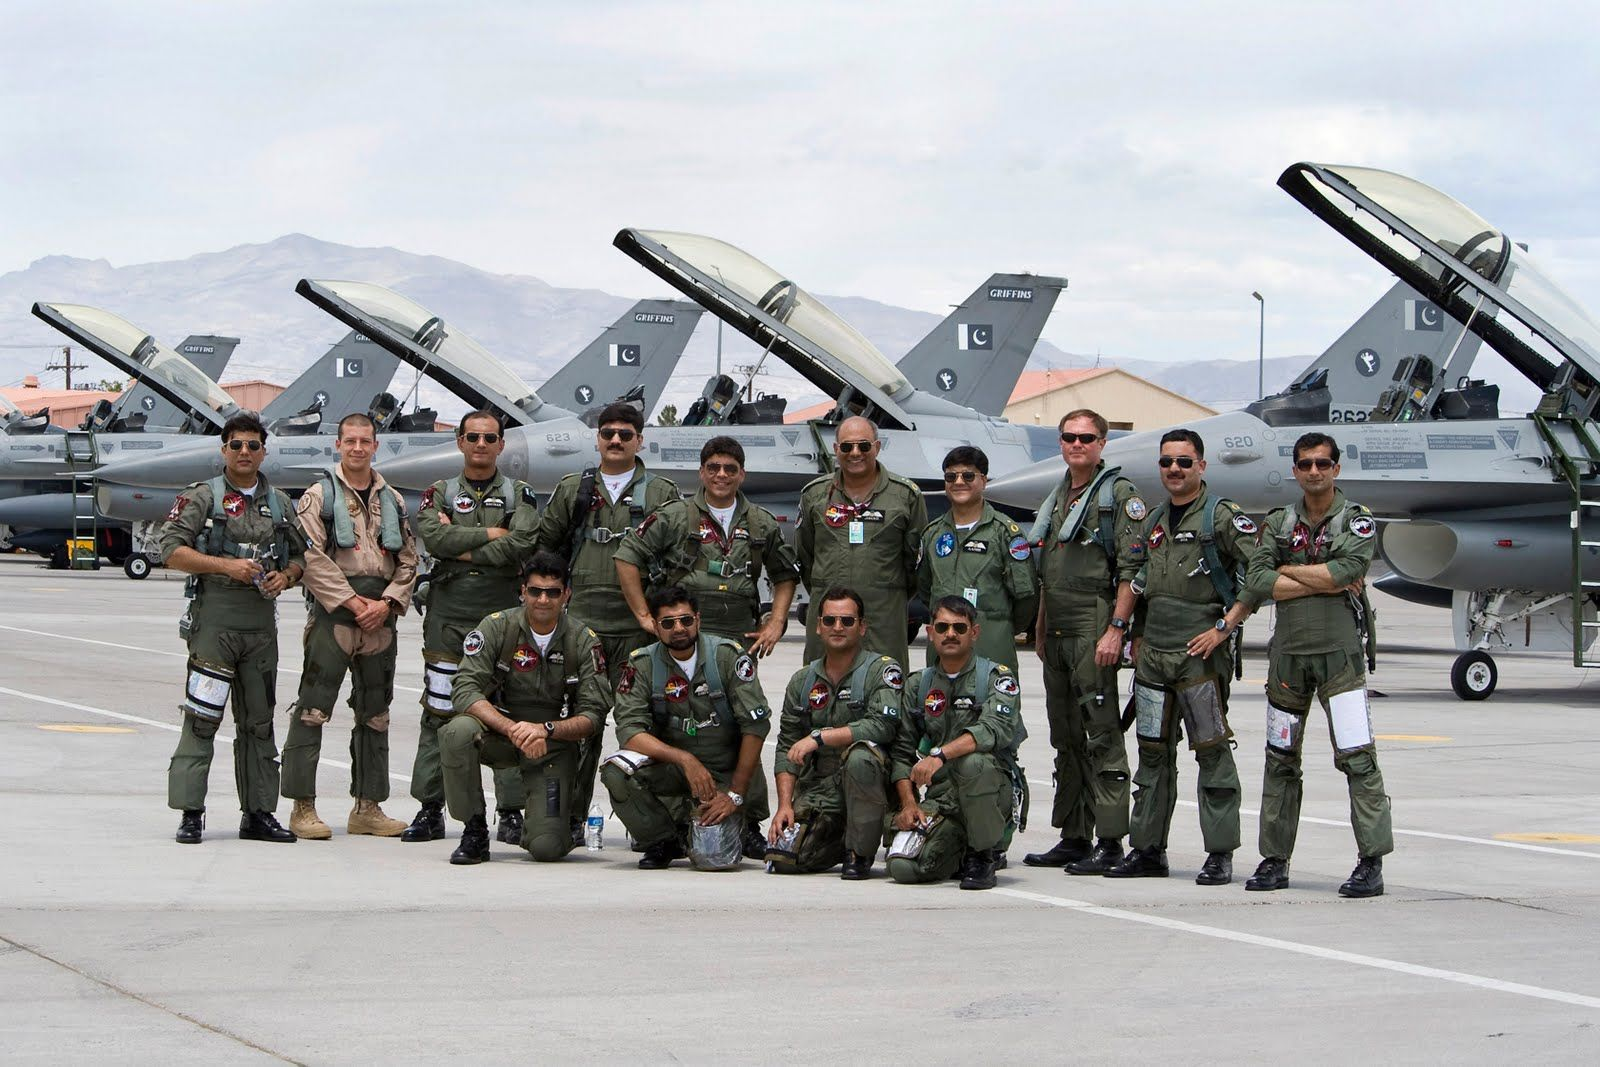 pakistan air force Pakistan army, Pakistan day, Pakistan